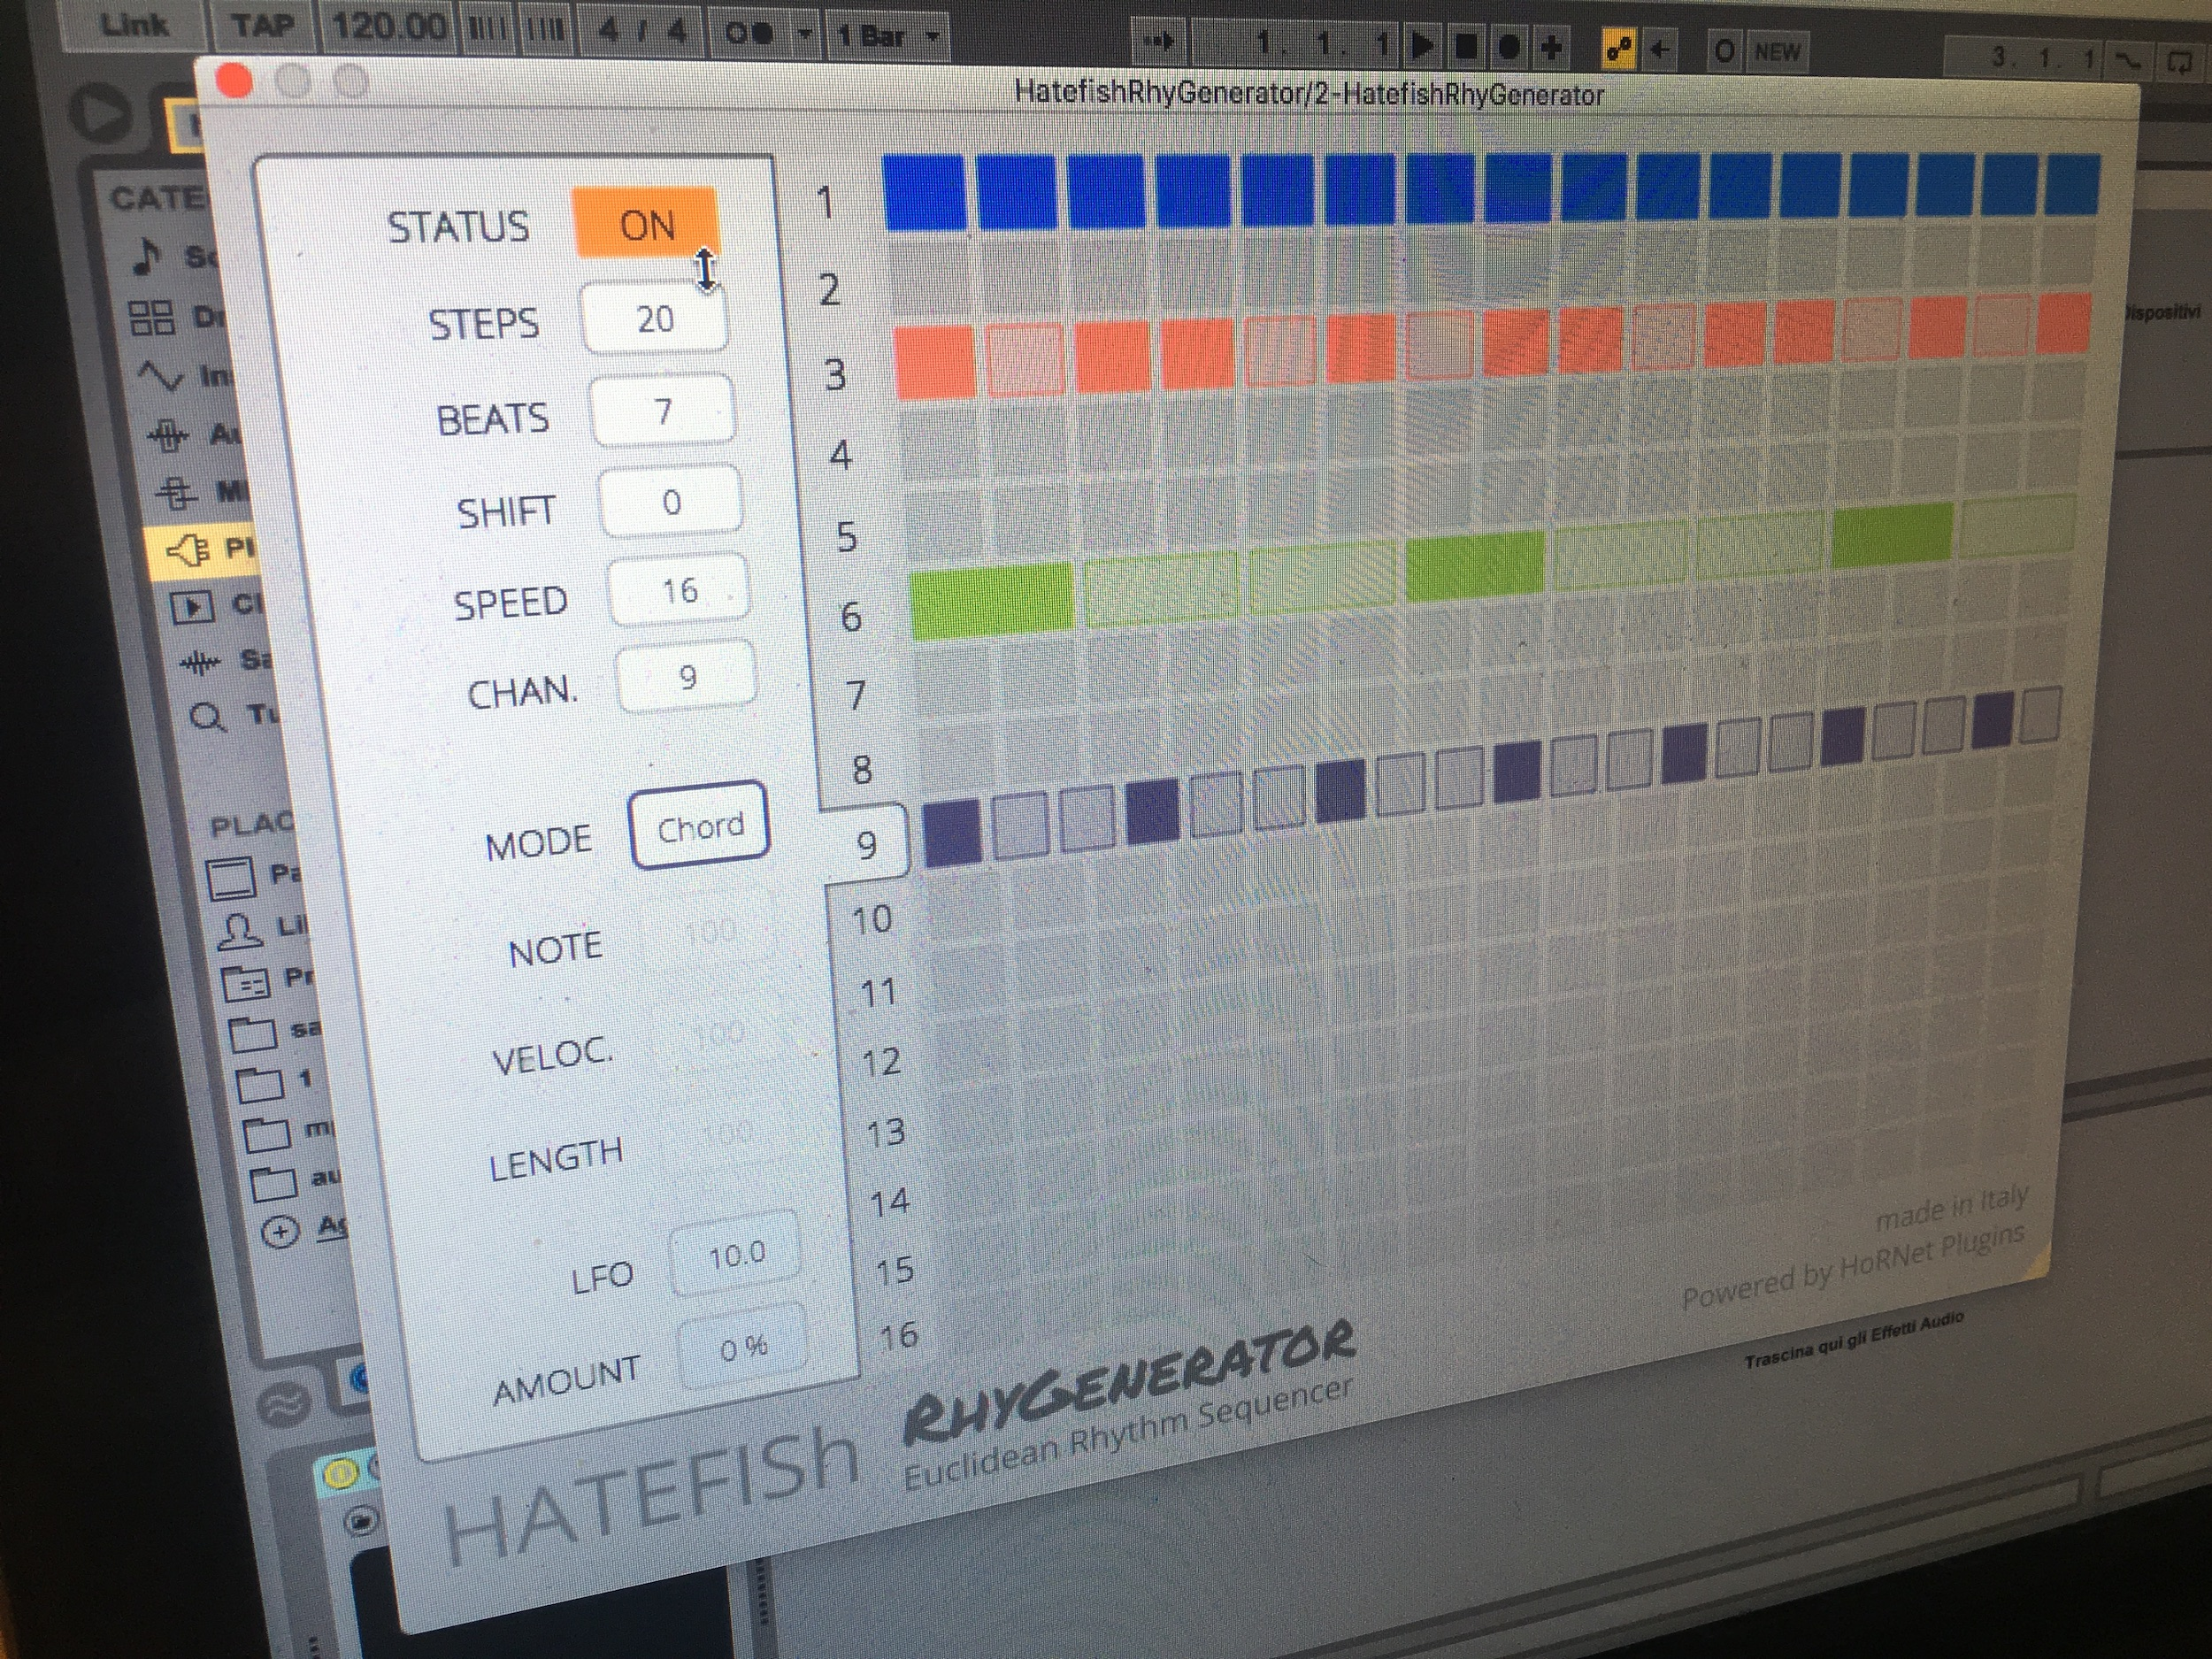 HoRNet makes some of the best cheap VST audio plugins, AU